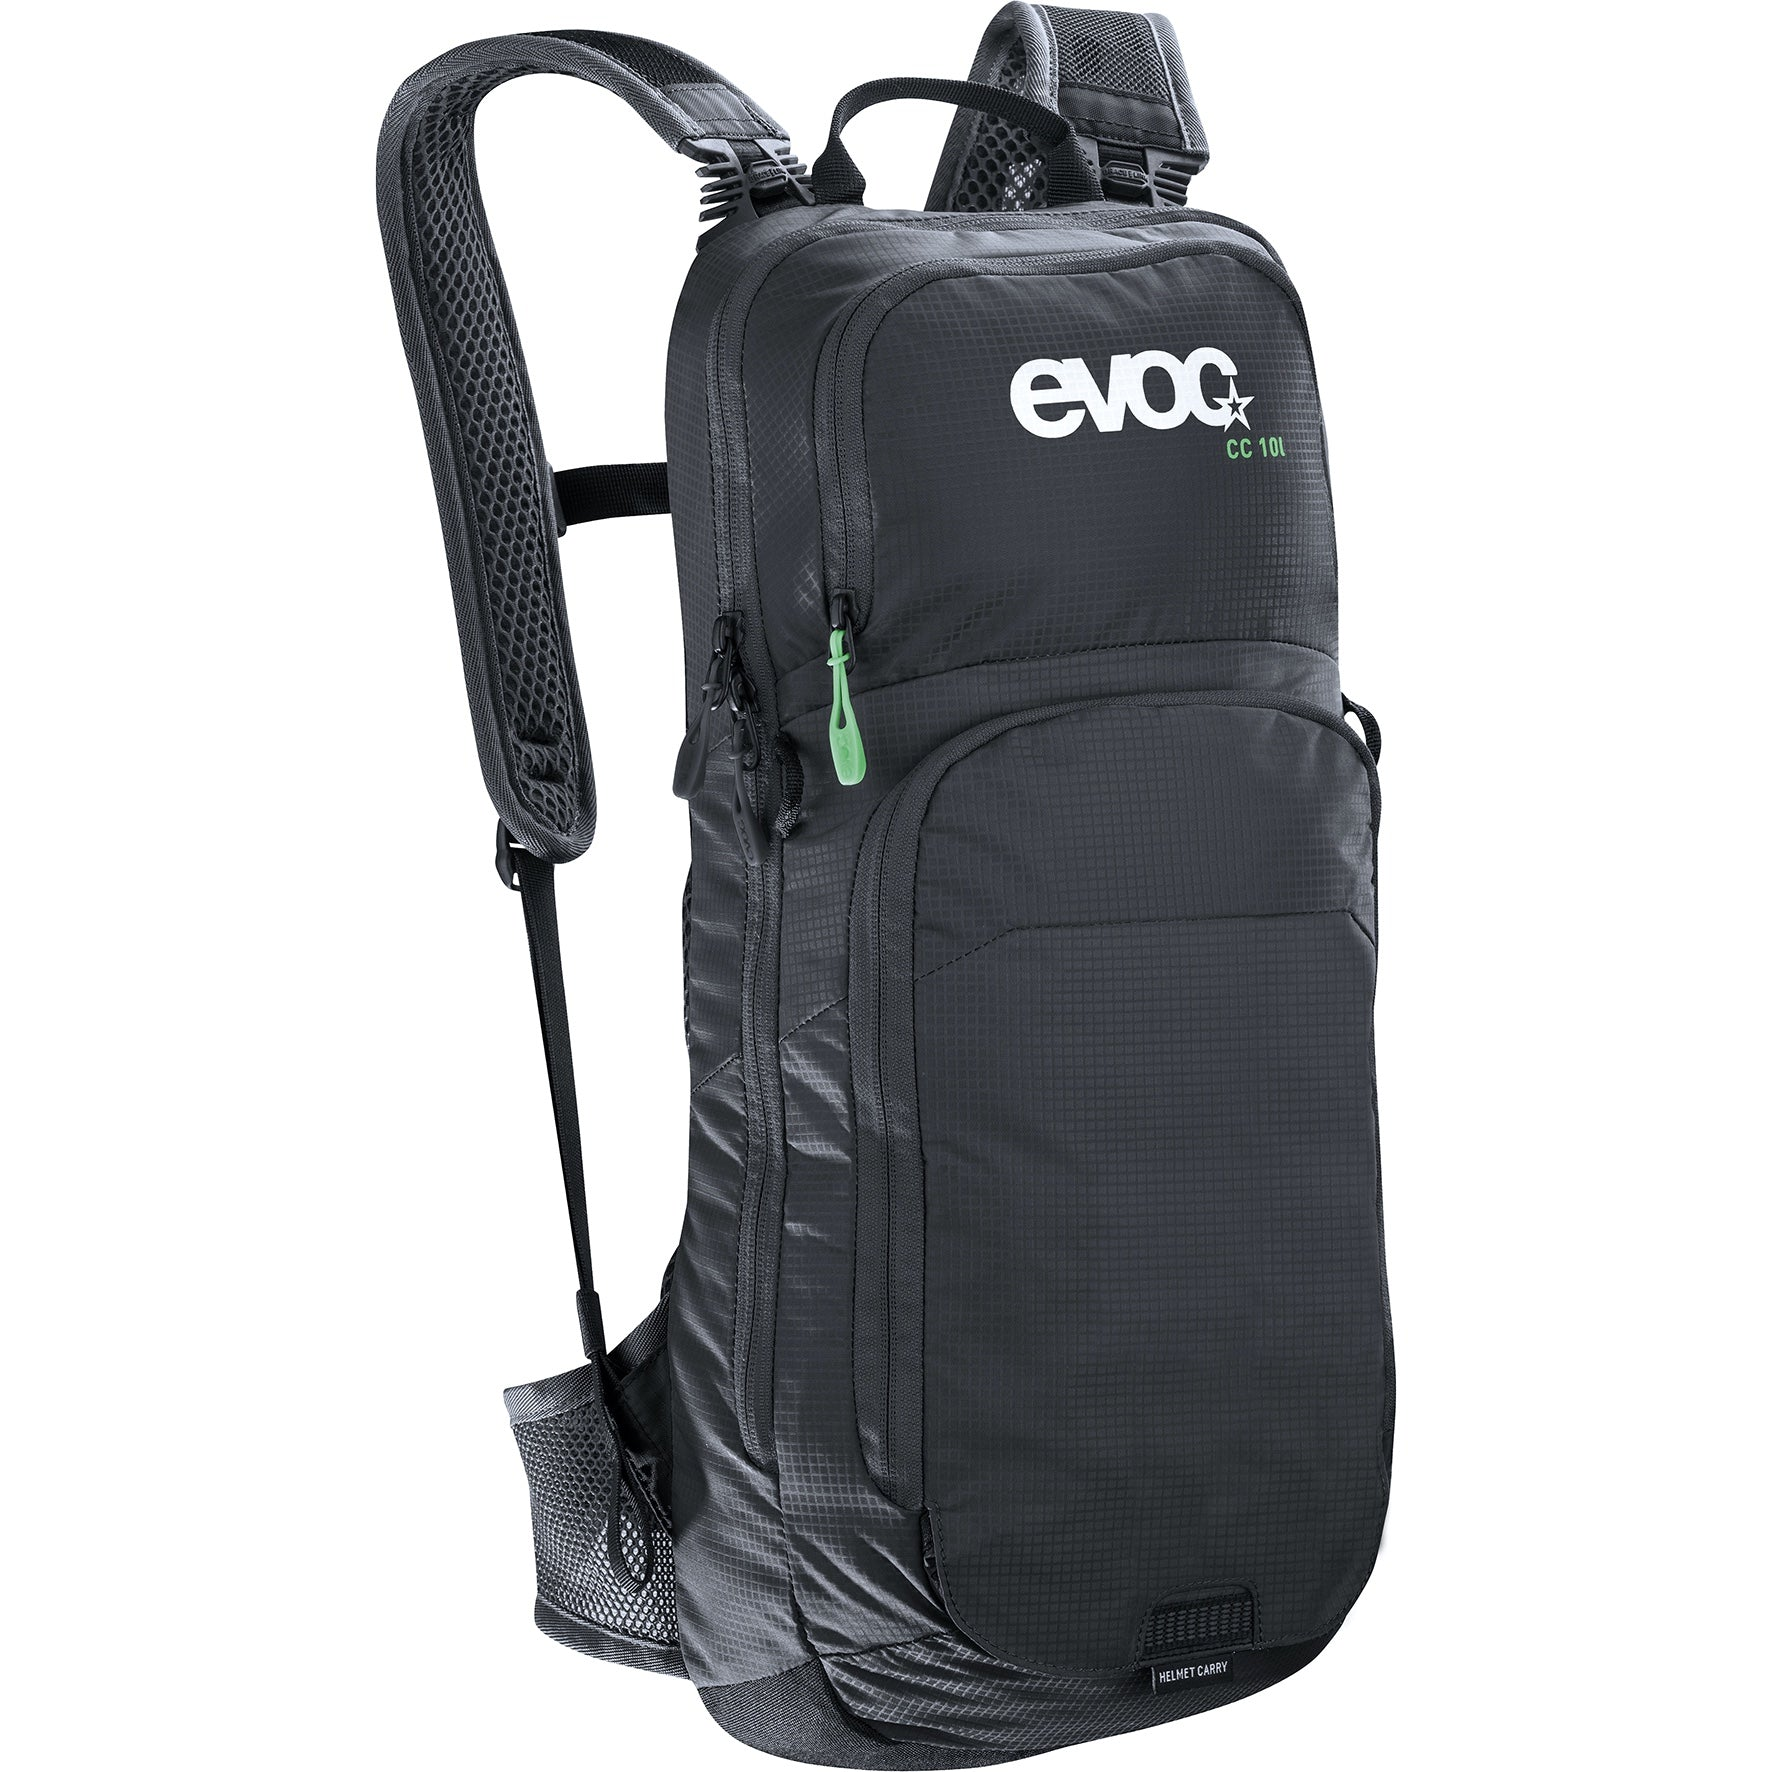 Mochila Evoc Cc 10l+2l Bladder Black